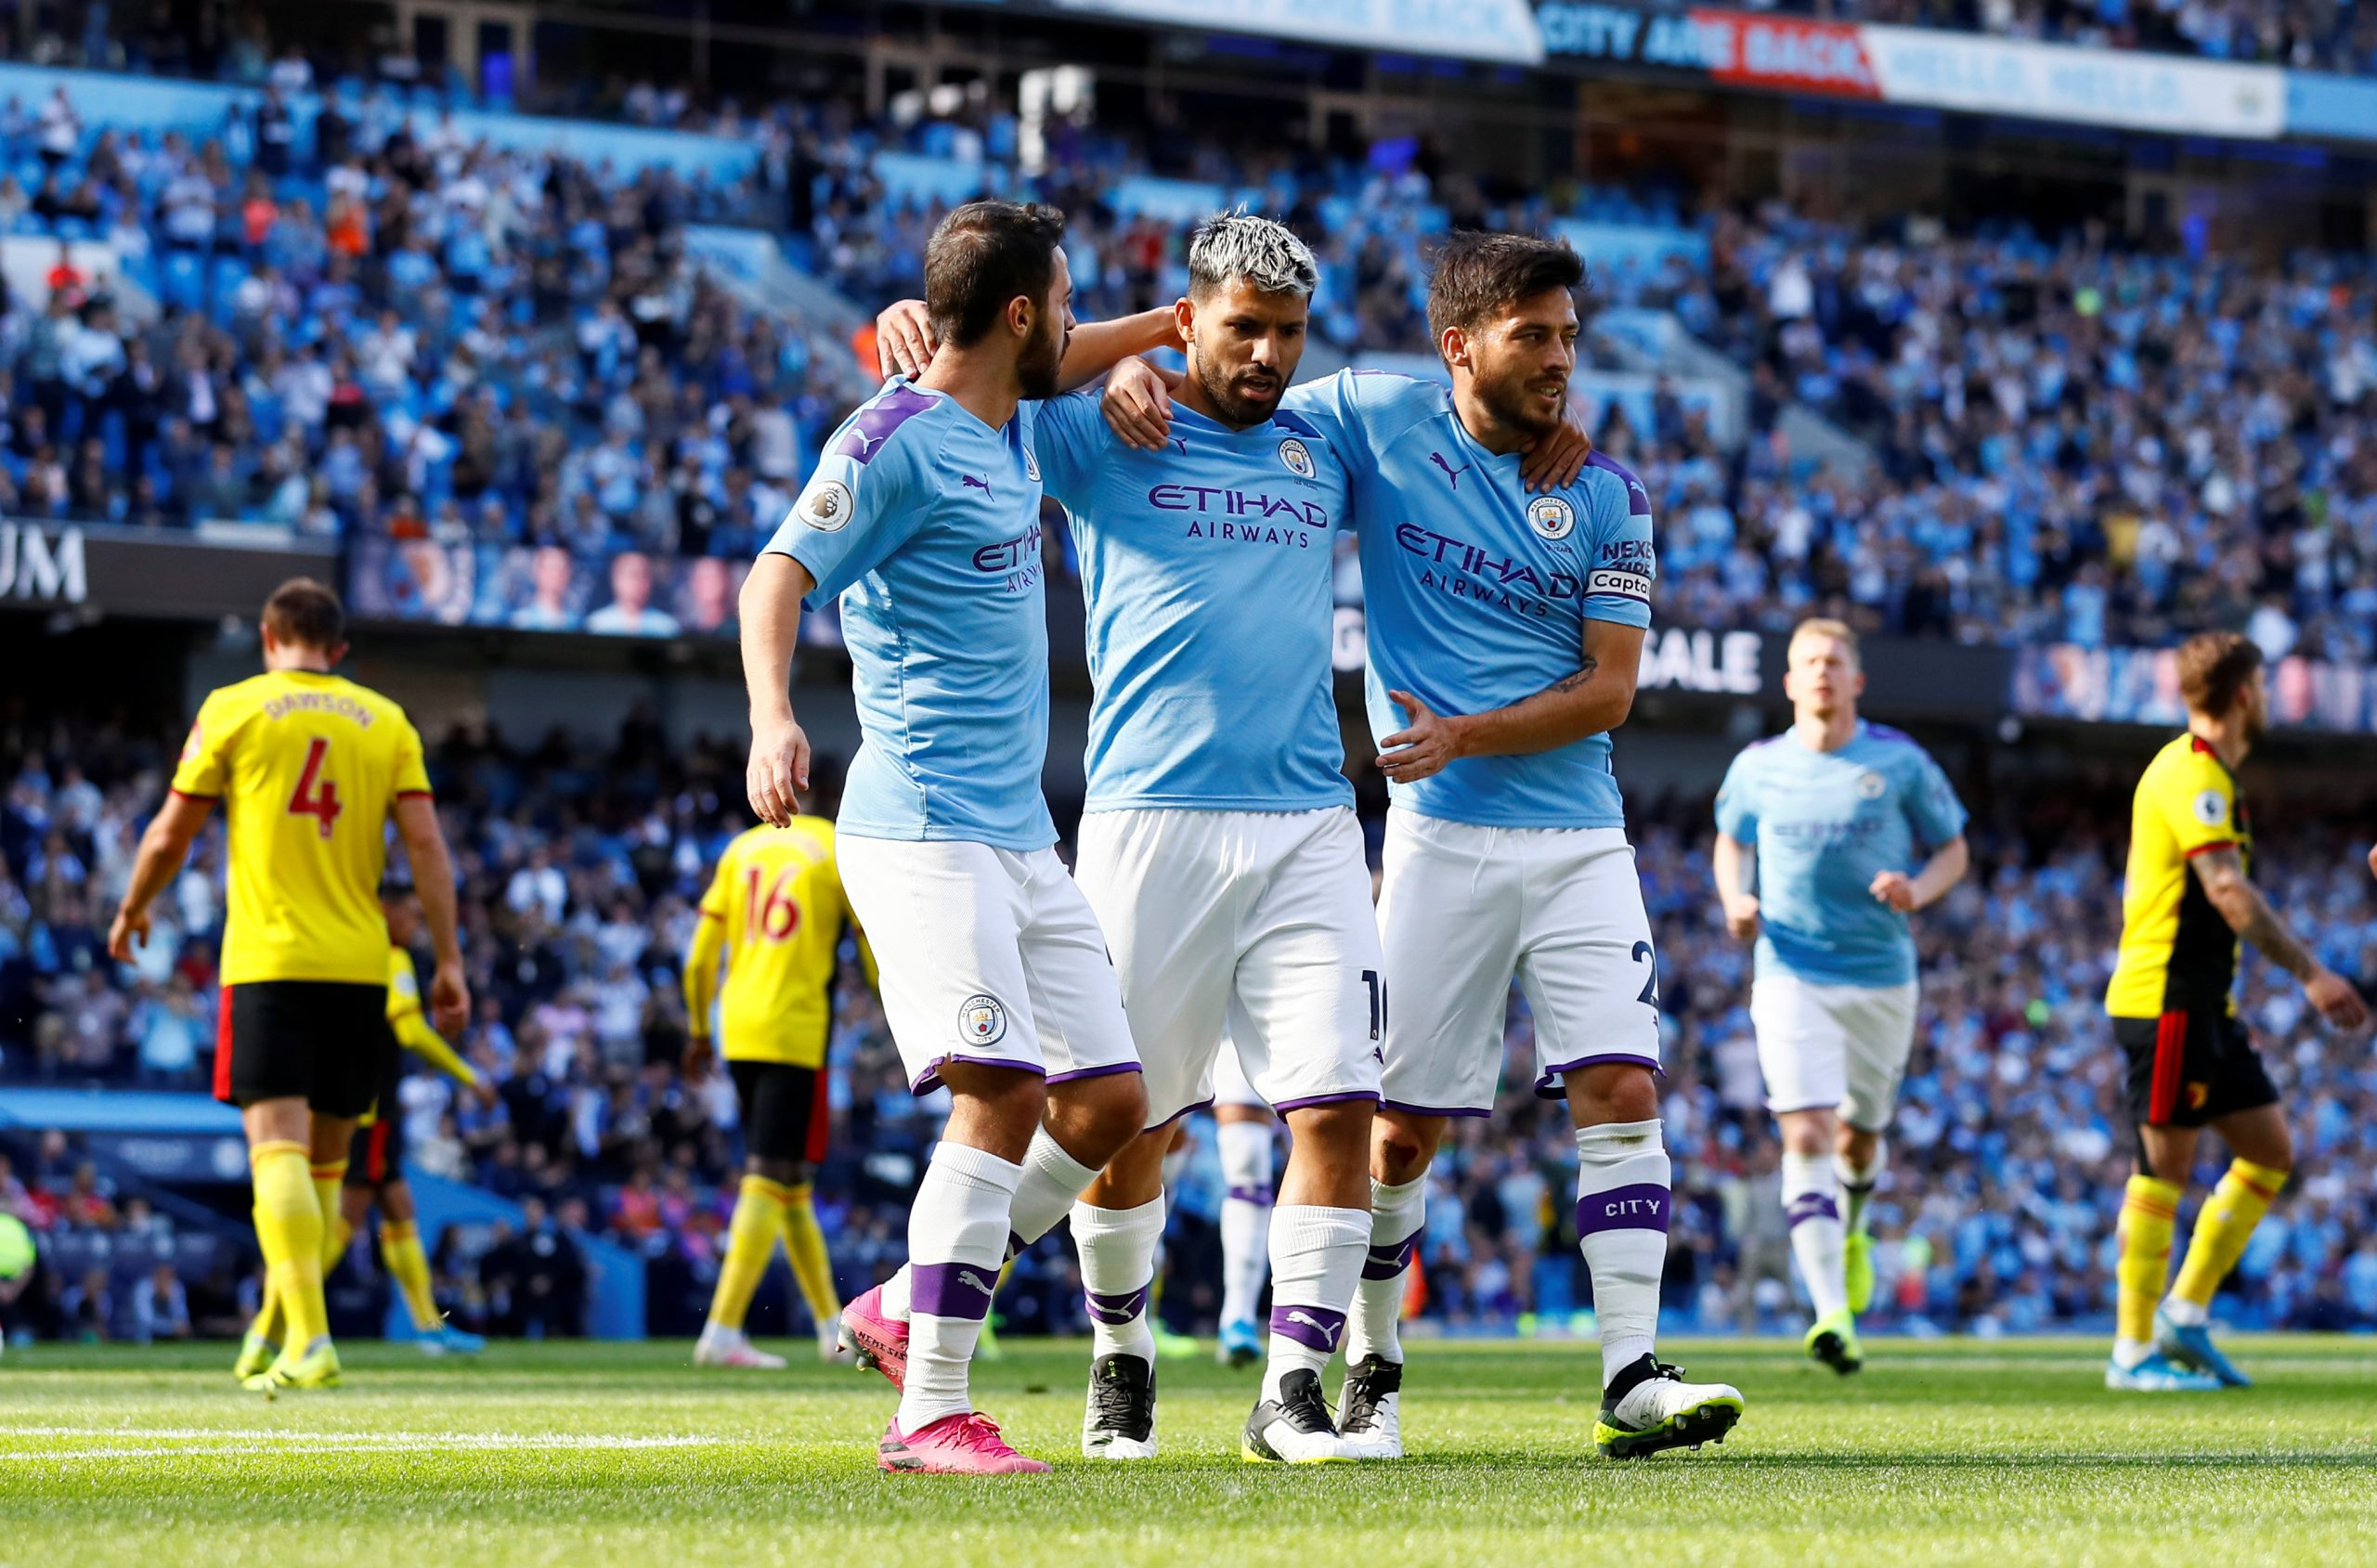 Manchester City Record League and Premier League win